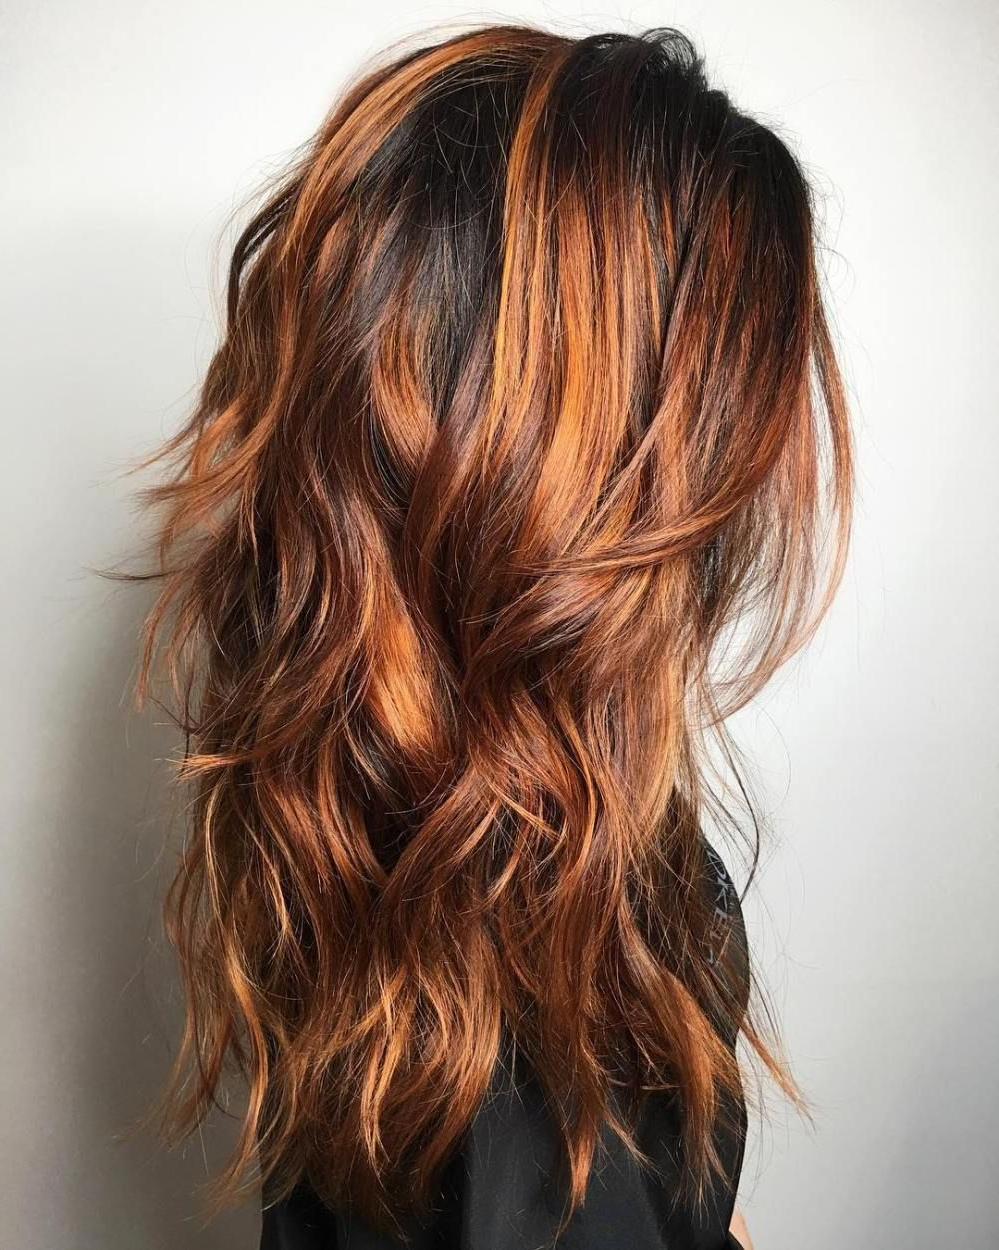 60 Most Universal Modern Shag Haircut Solutions In 2019 In Favorite Layered Bob Shag Haircuts With Balayage (View 9 of 20)